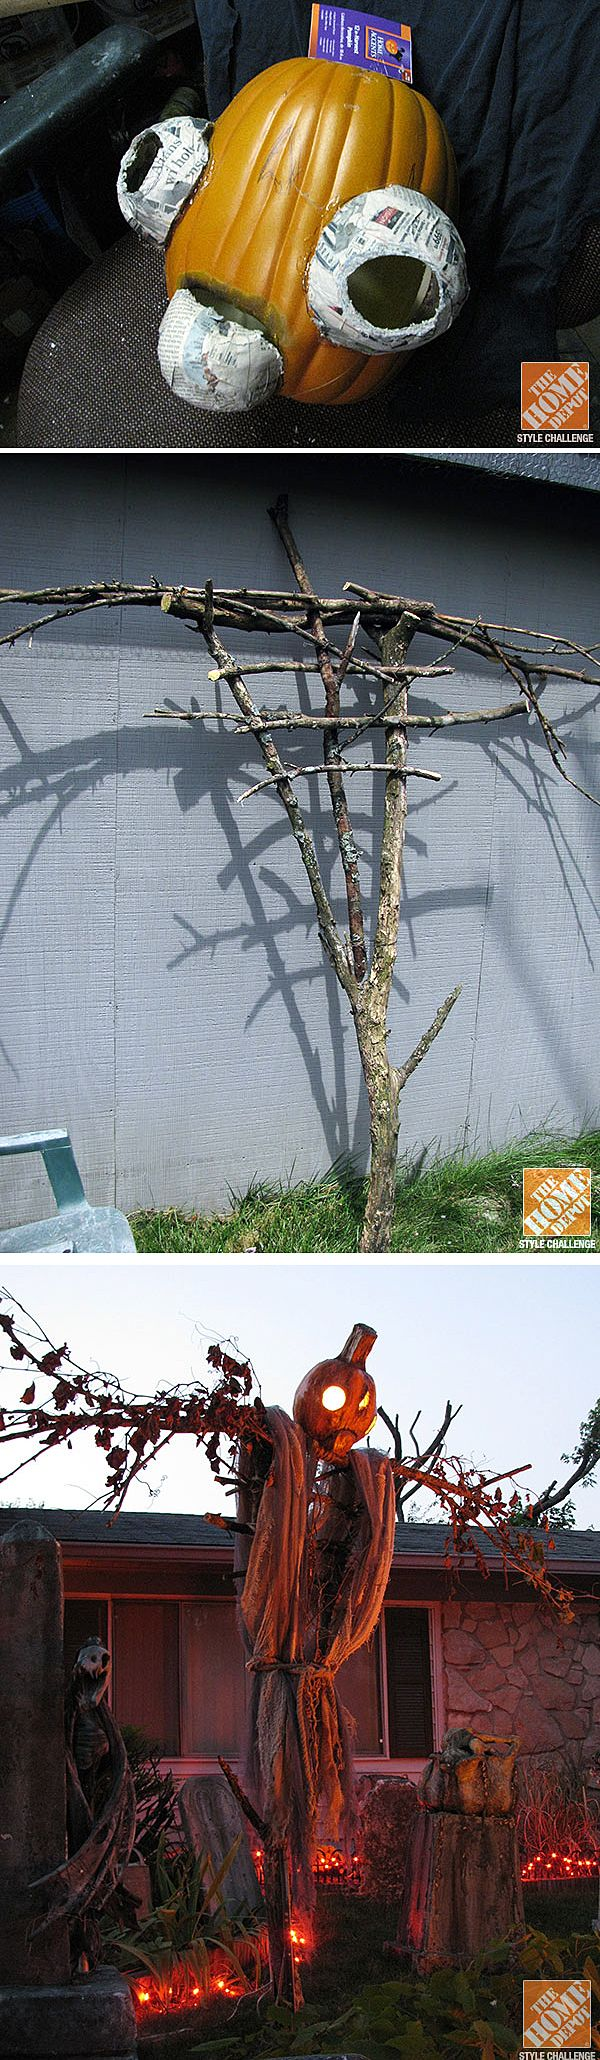 David Schilling's home in Indianapolis is famous for its annual Halloween display called The Shadow Farm. He shows us how he created this very spooky jack-o-lantern scarecrow for his yard. Click through to The Home Depot Blog to see it.